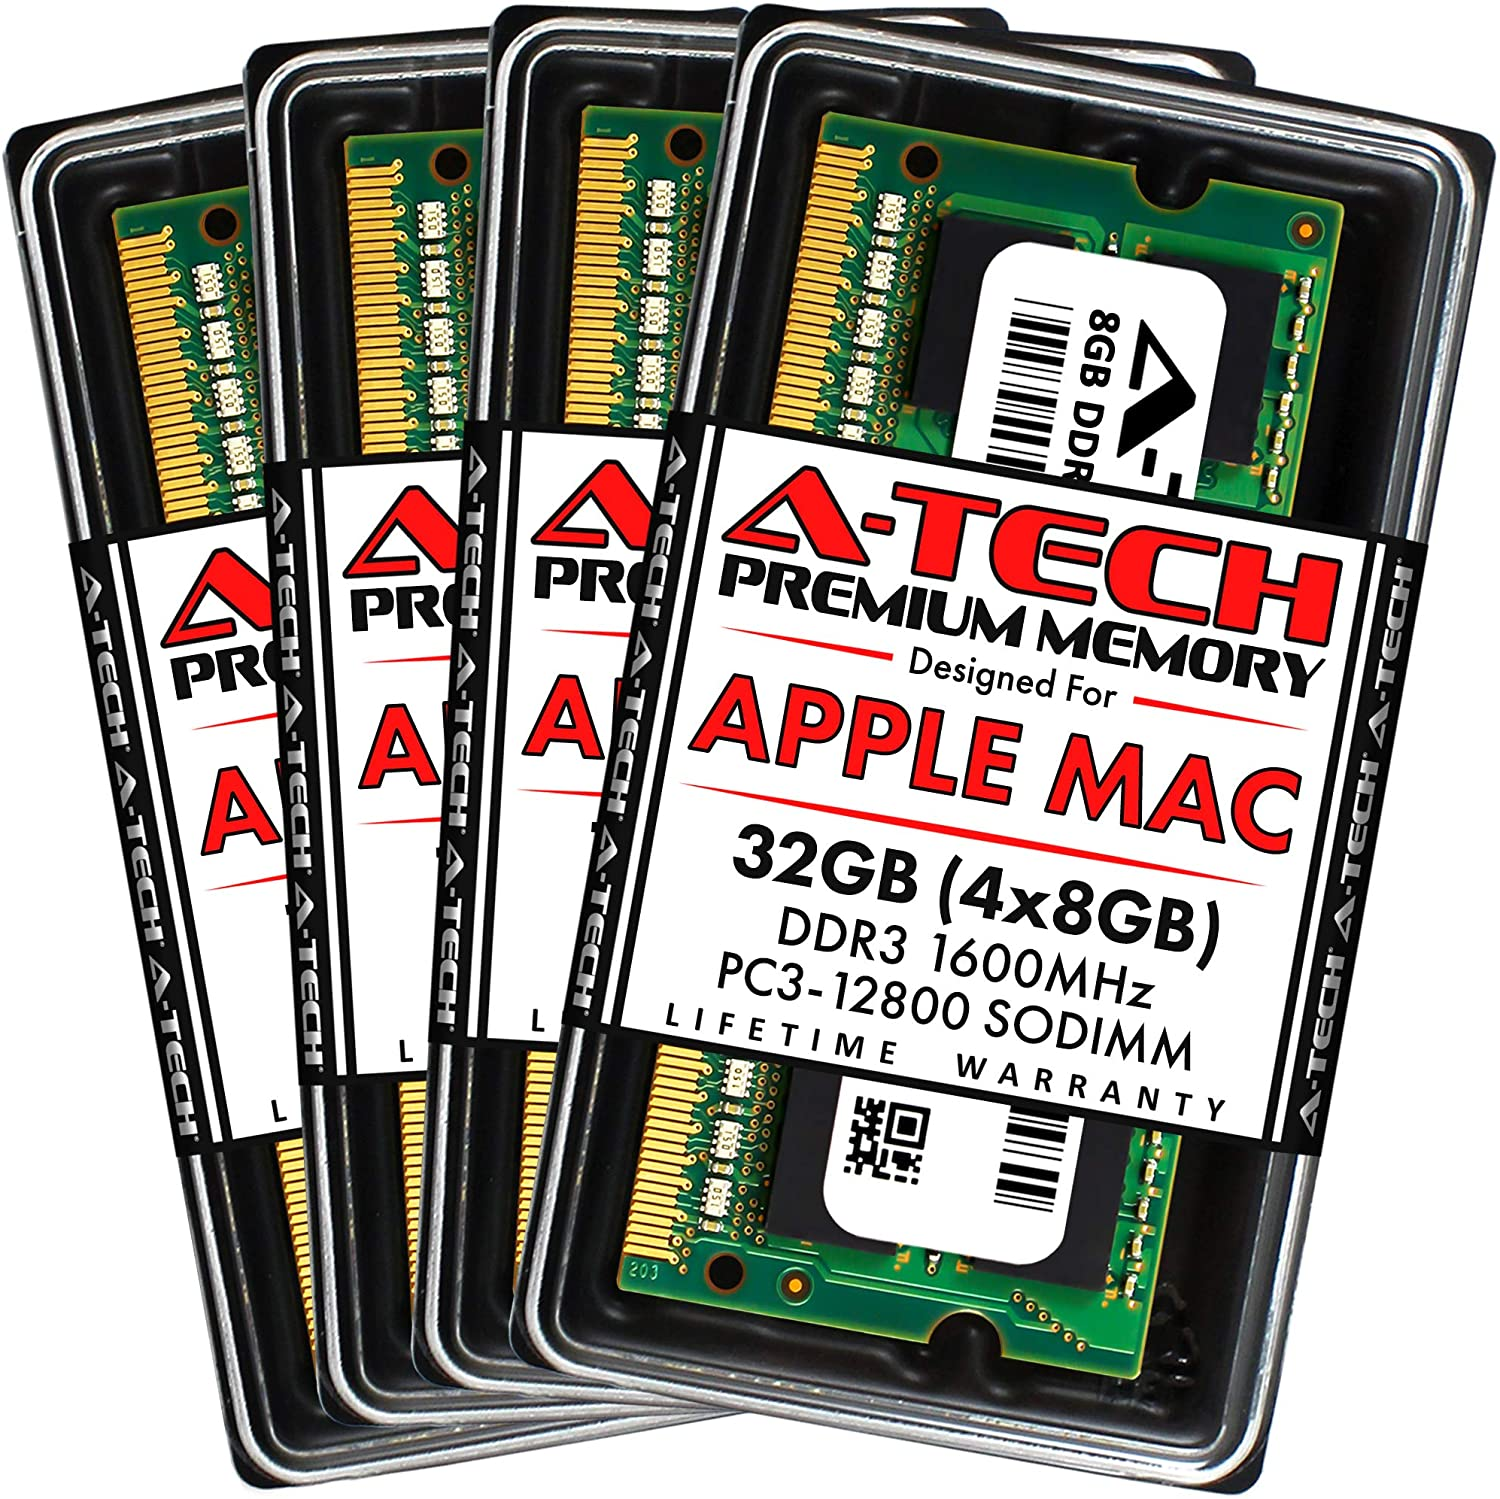 A-Tech 32GB Kit (4x8GB) DDR3 1600MHz SODIMM PC3-12800 RAM for Apple iMac (Late 2012, Late 2013, Late 2014 Retina 5K, Mid 2015 Retina 5K) | Max Memory Upgrade